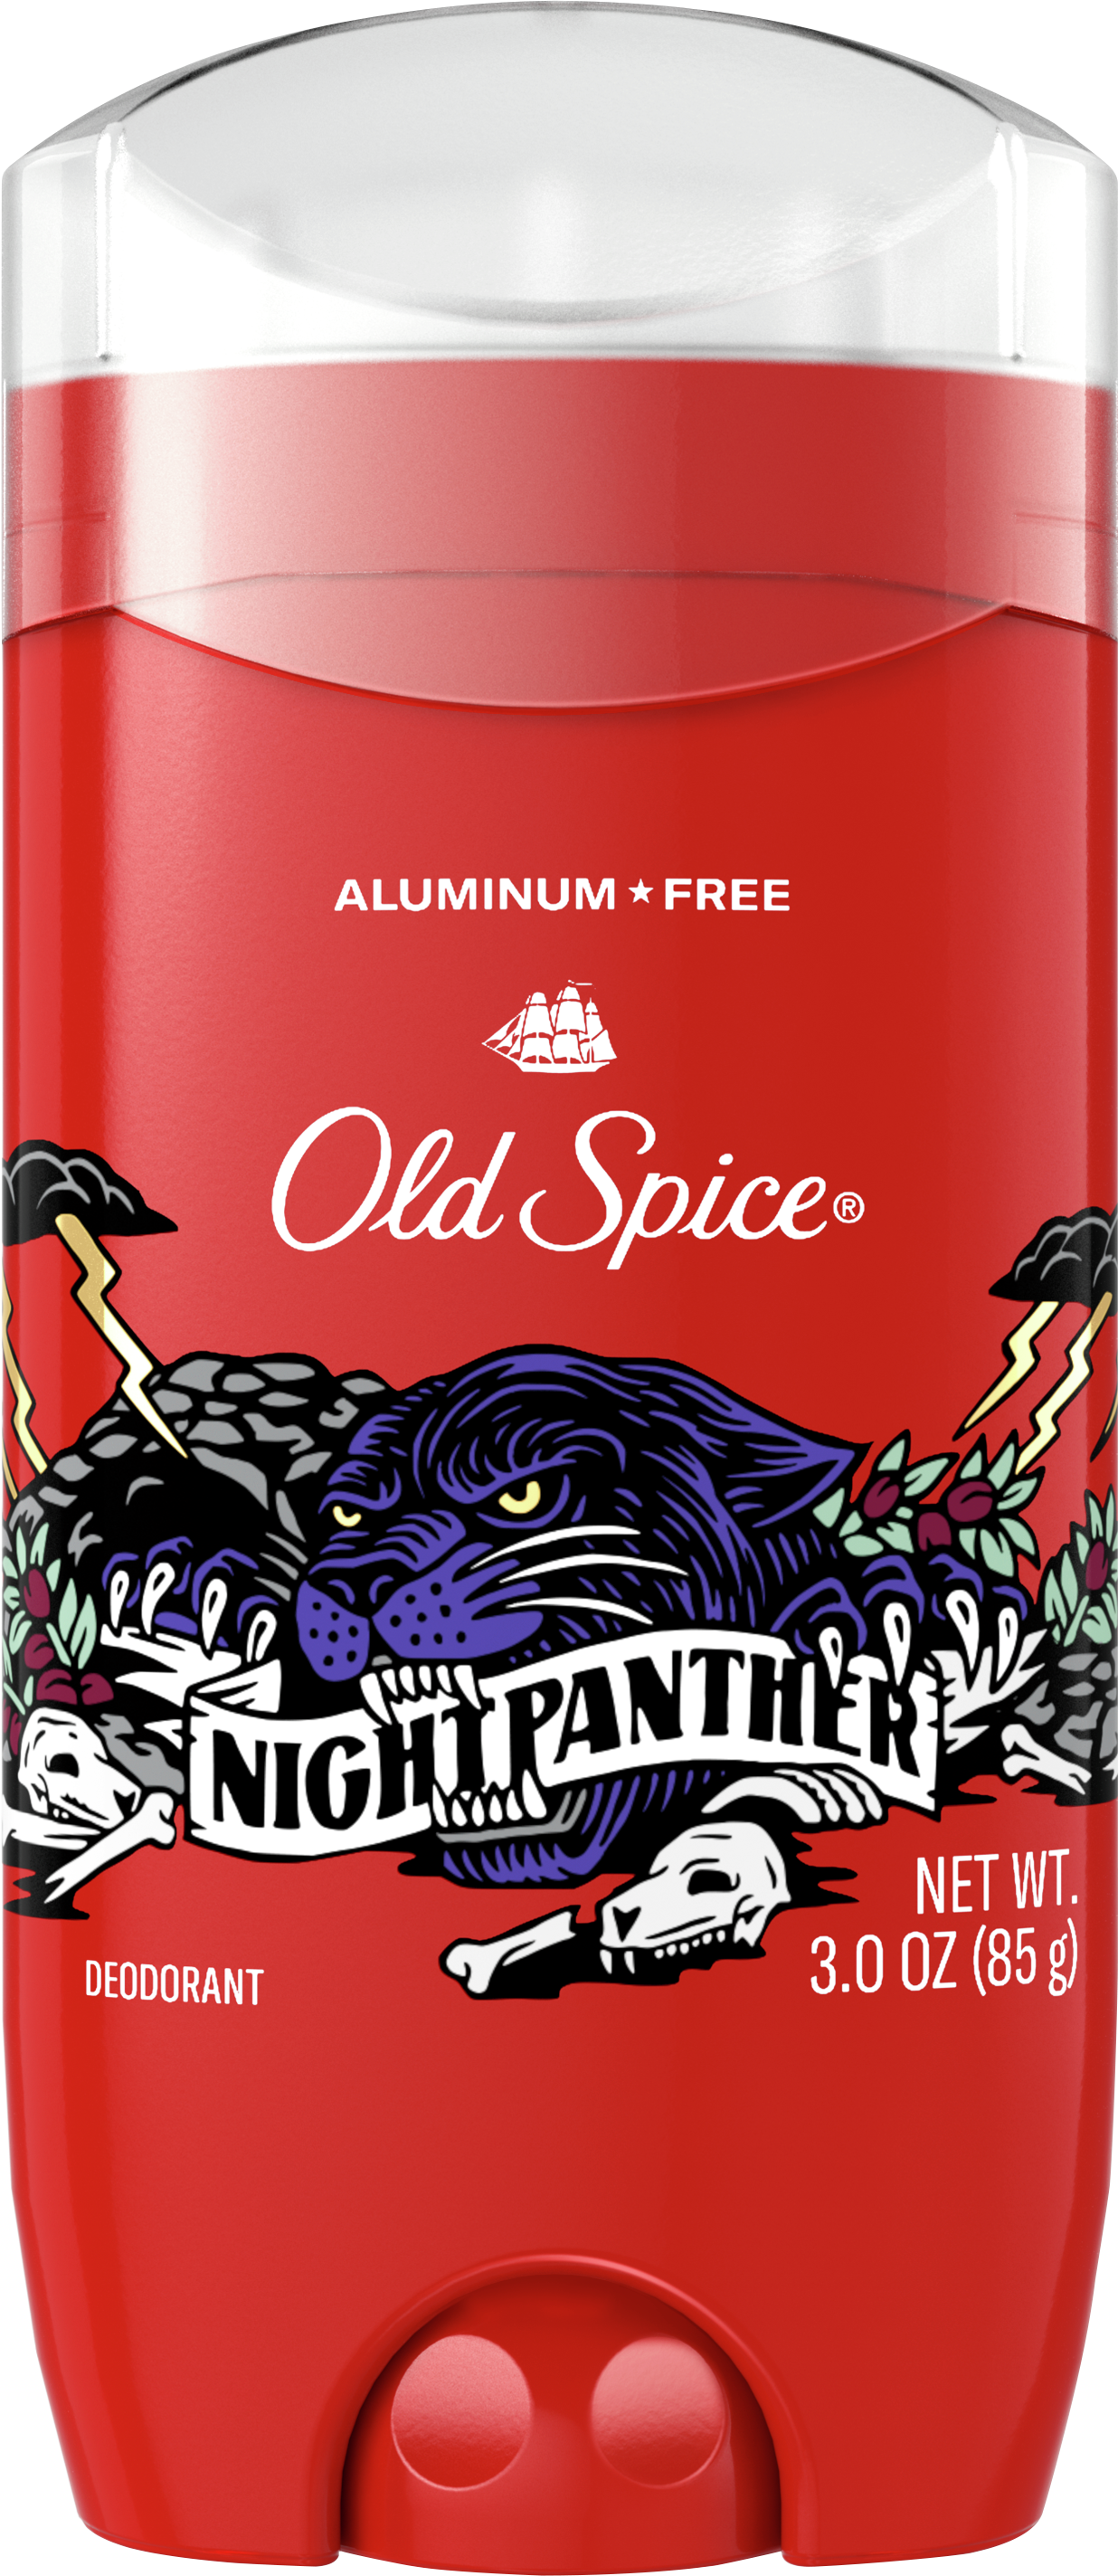 NightPanther Deodorant